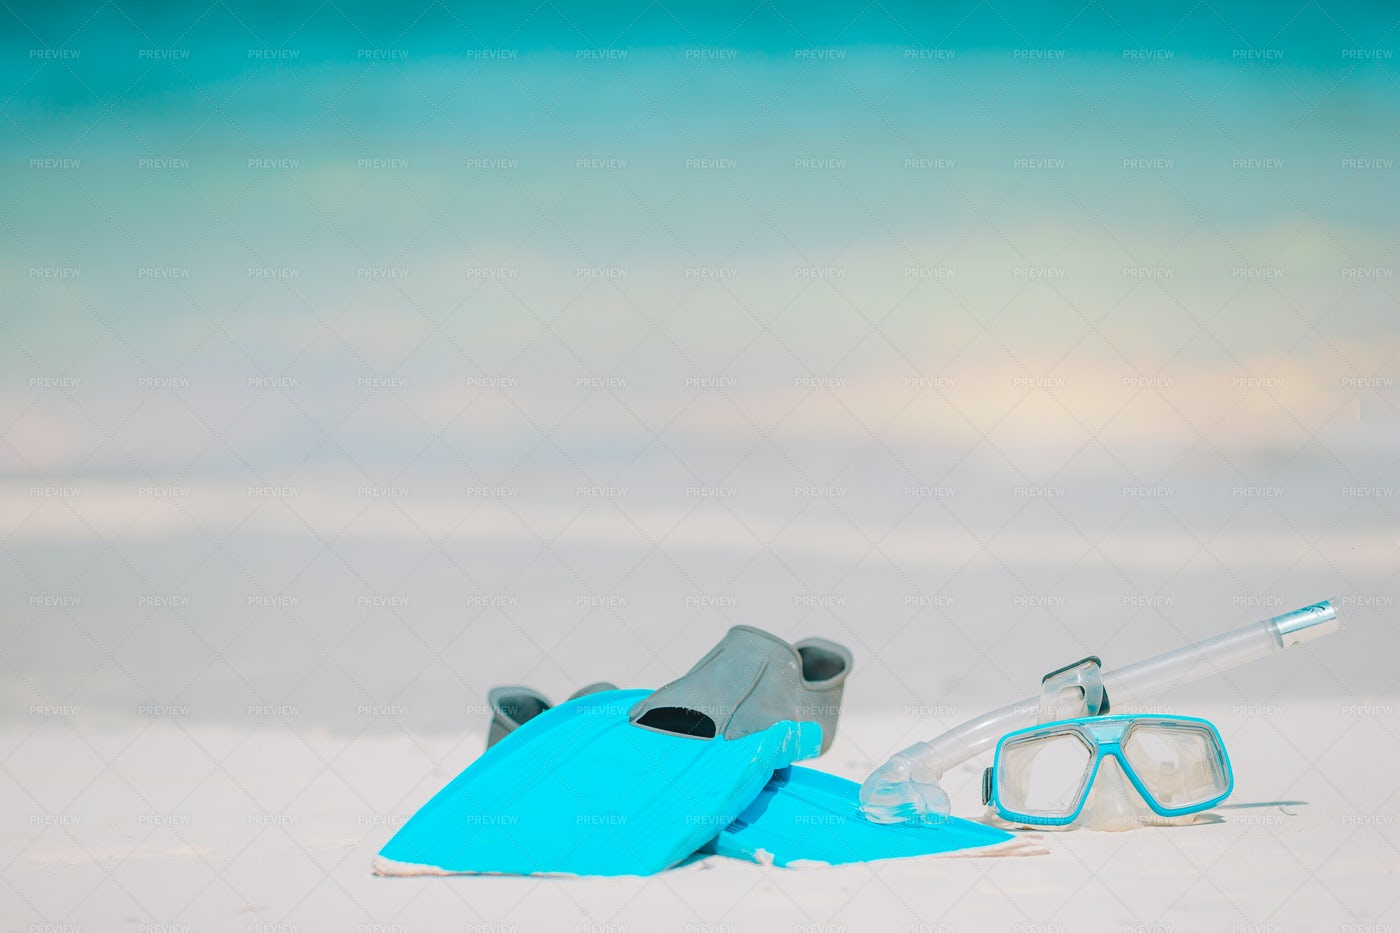 Snorkeling Equipment In The Sand: Stock Photos